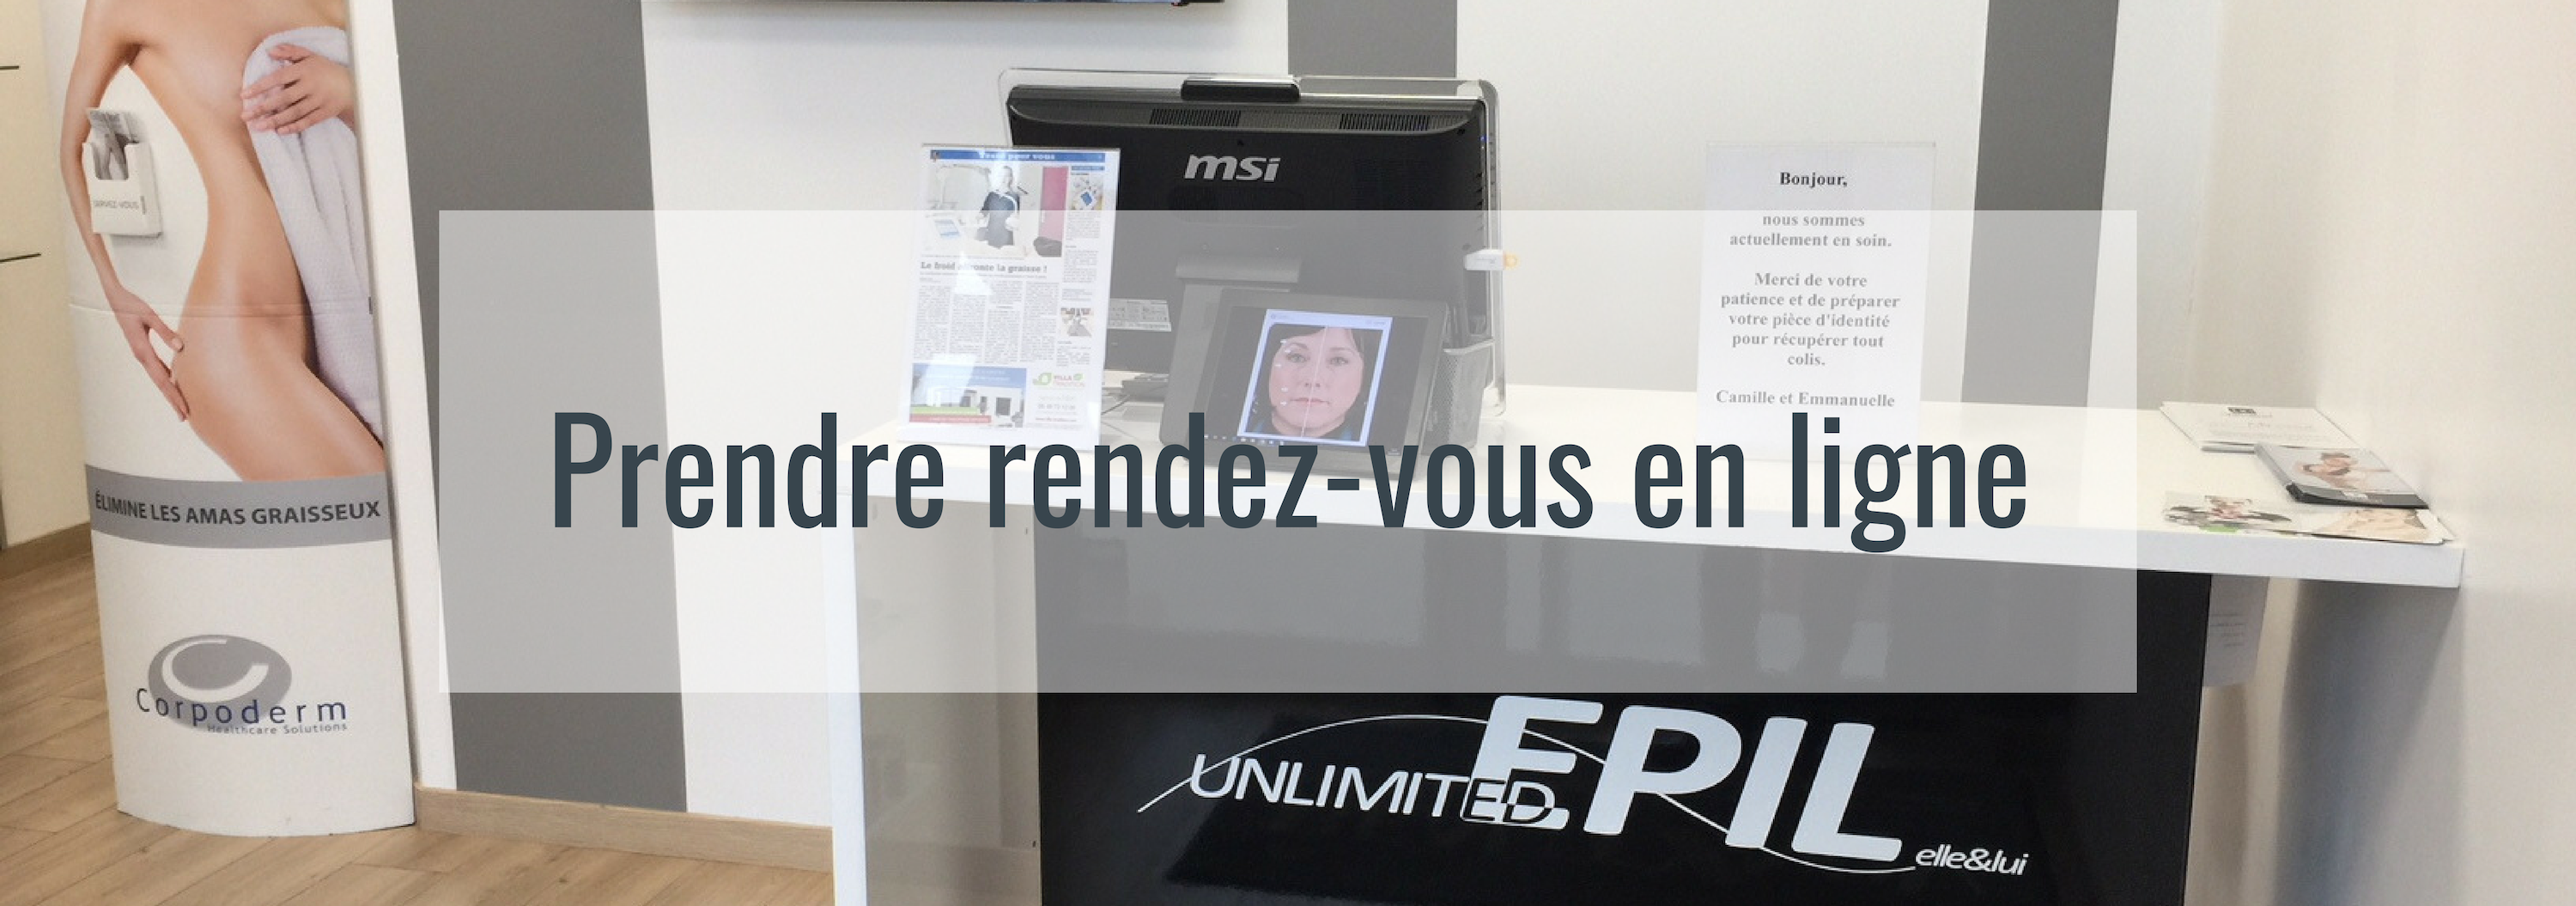 unlimited-epil-niort-contact-rdv-en-ligne